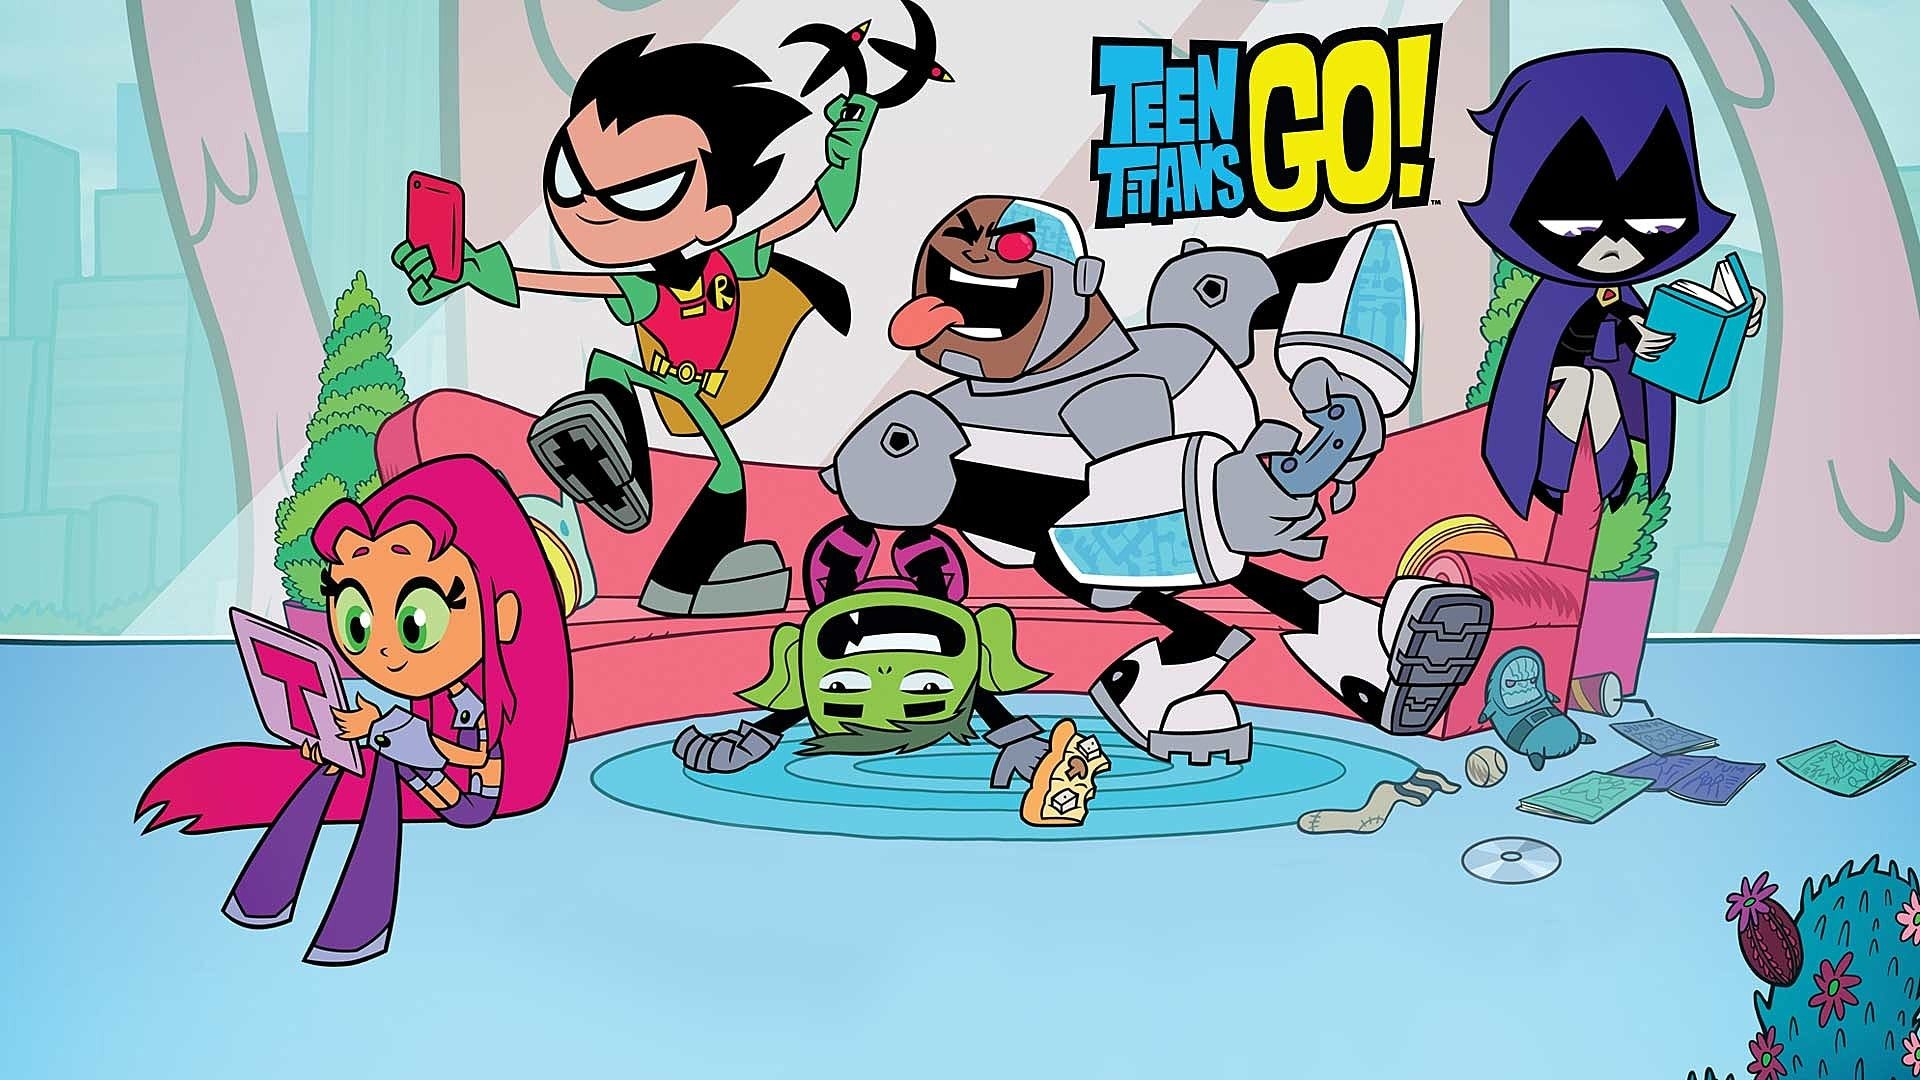 Teen Titans GO Figure cover